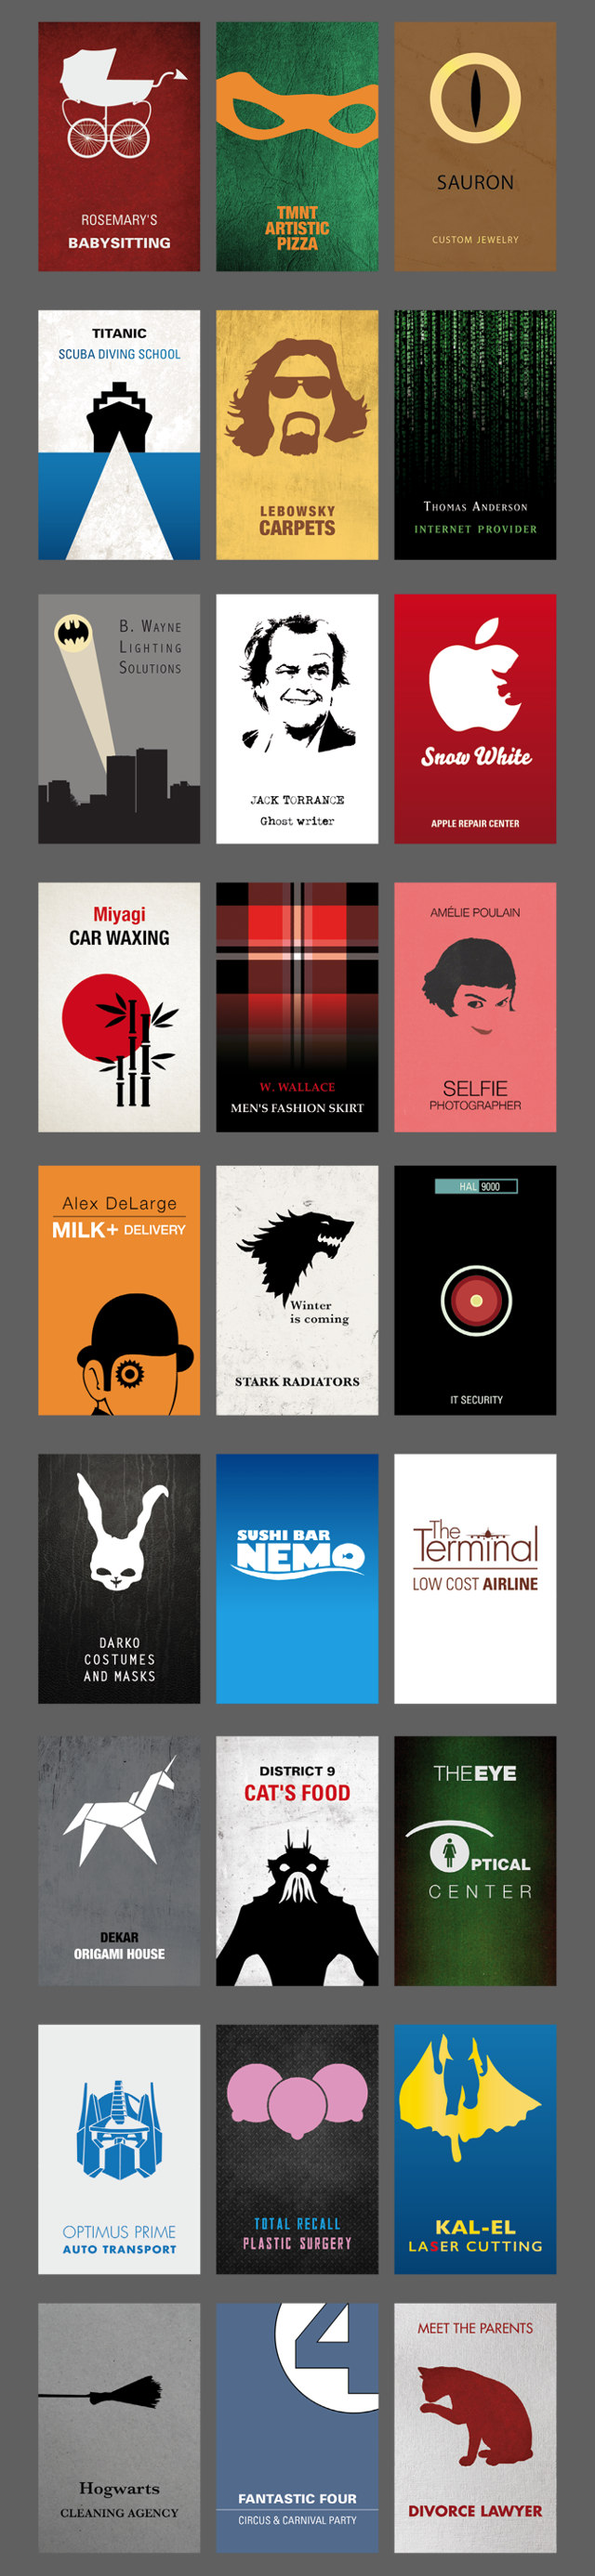 Business Cards For Fictional Movie Characters Starting Their Own Businesses